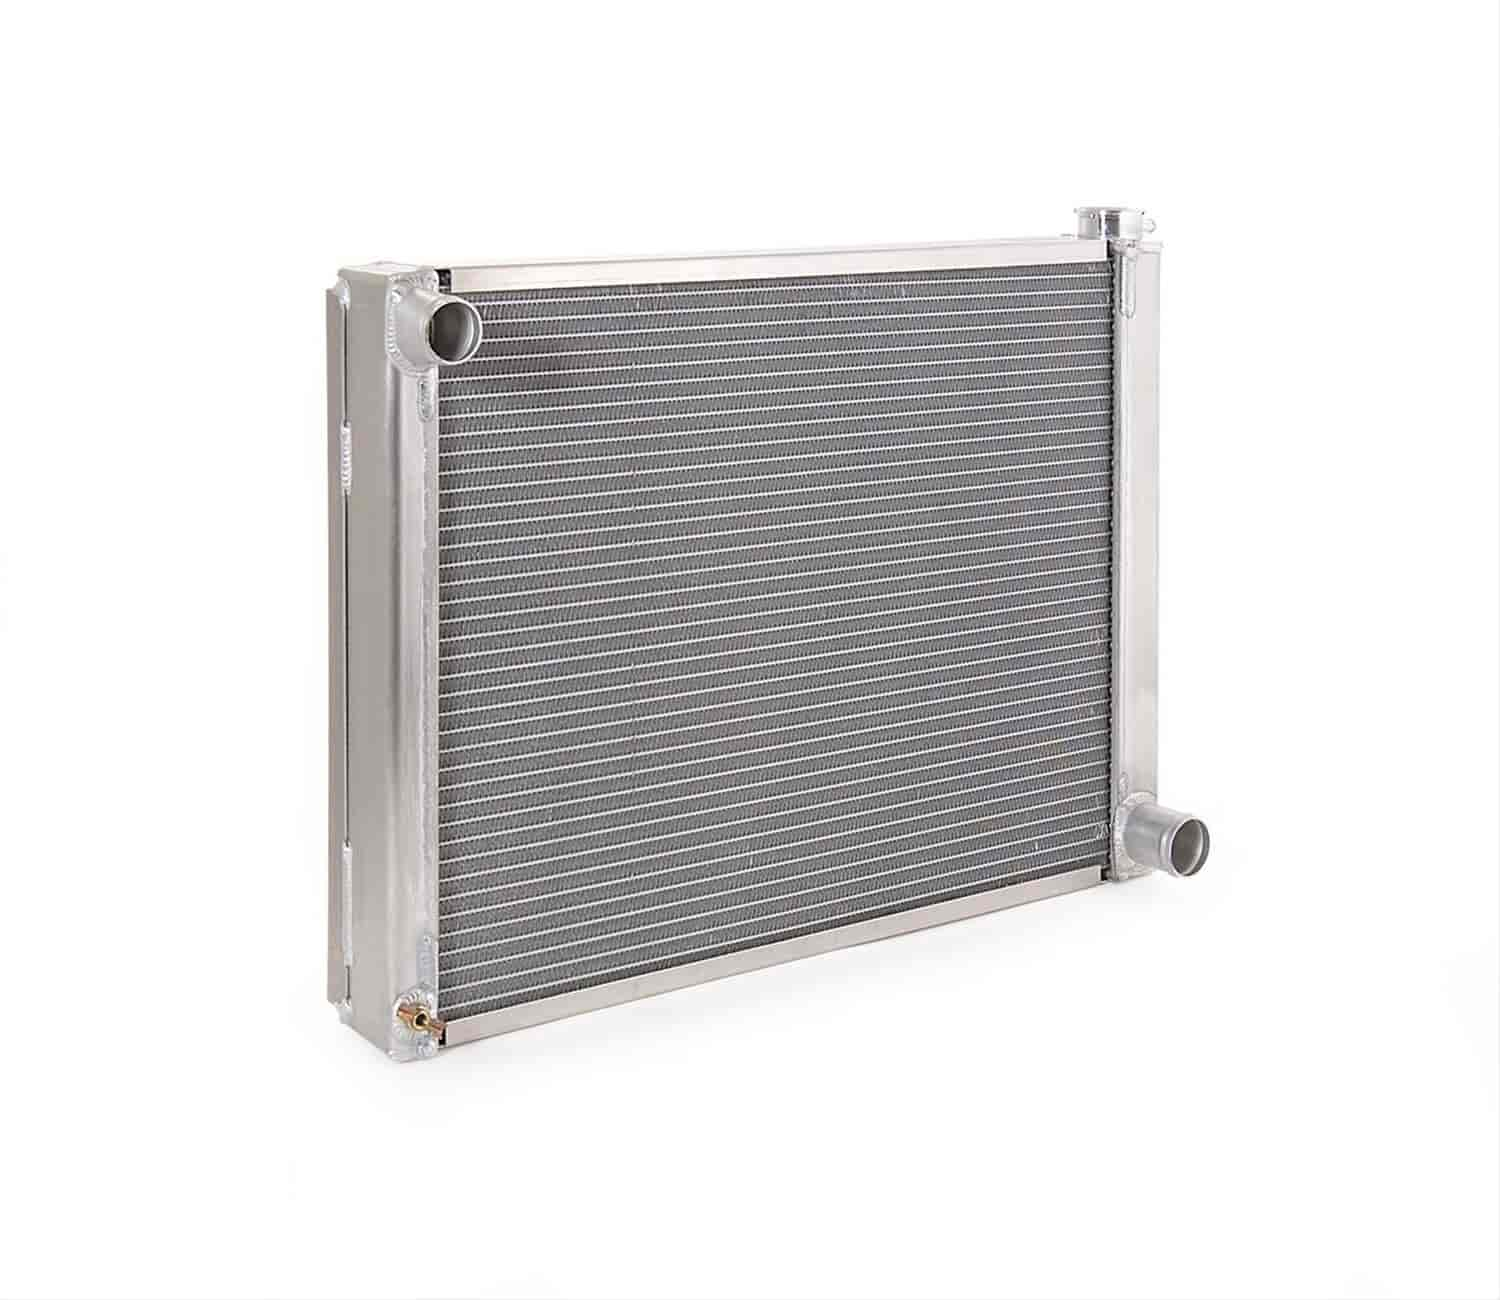 Be Cool Radiators 60012 - Be Cool Crossflow Series Aluminum Radiators